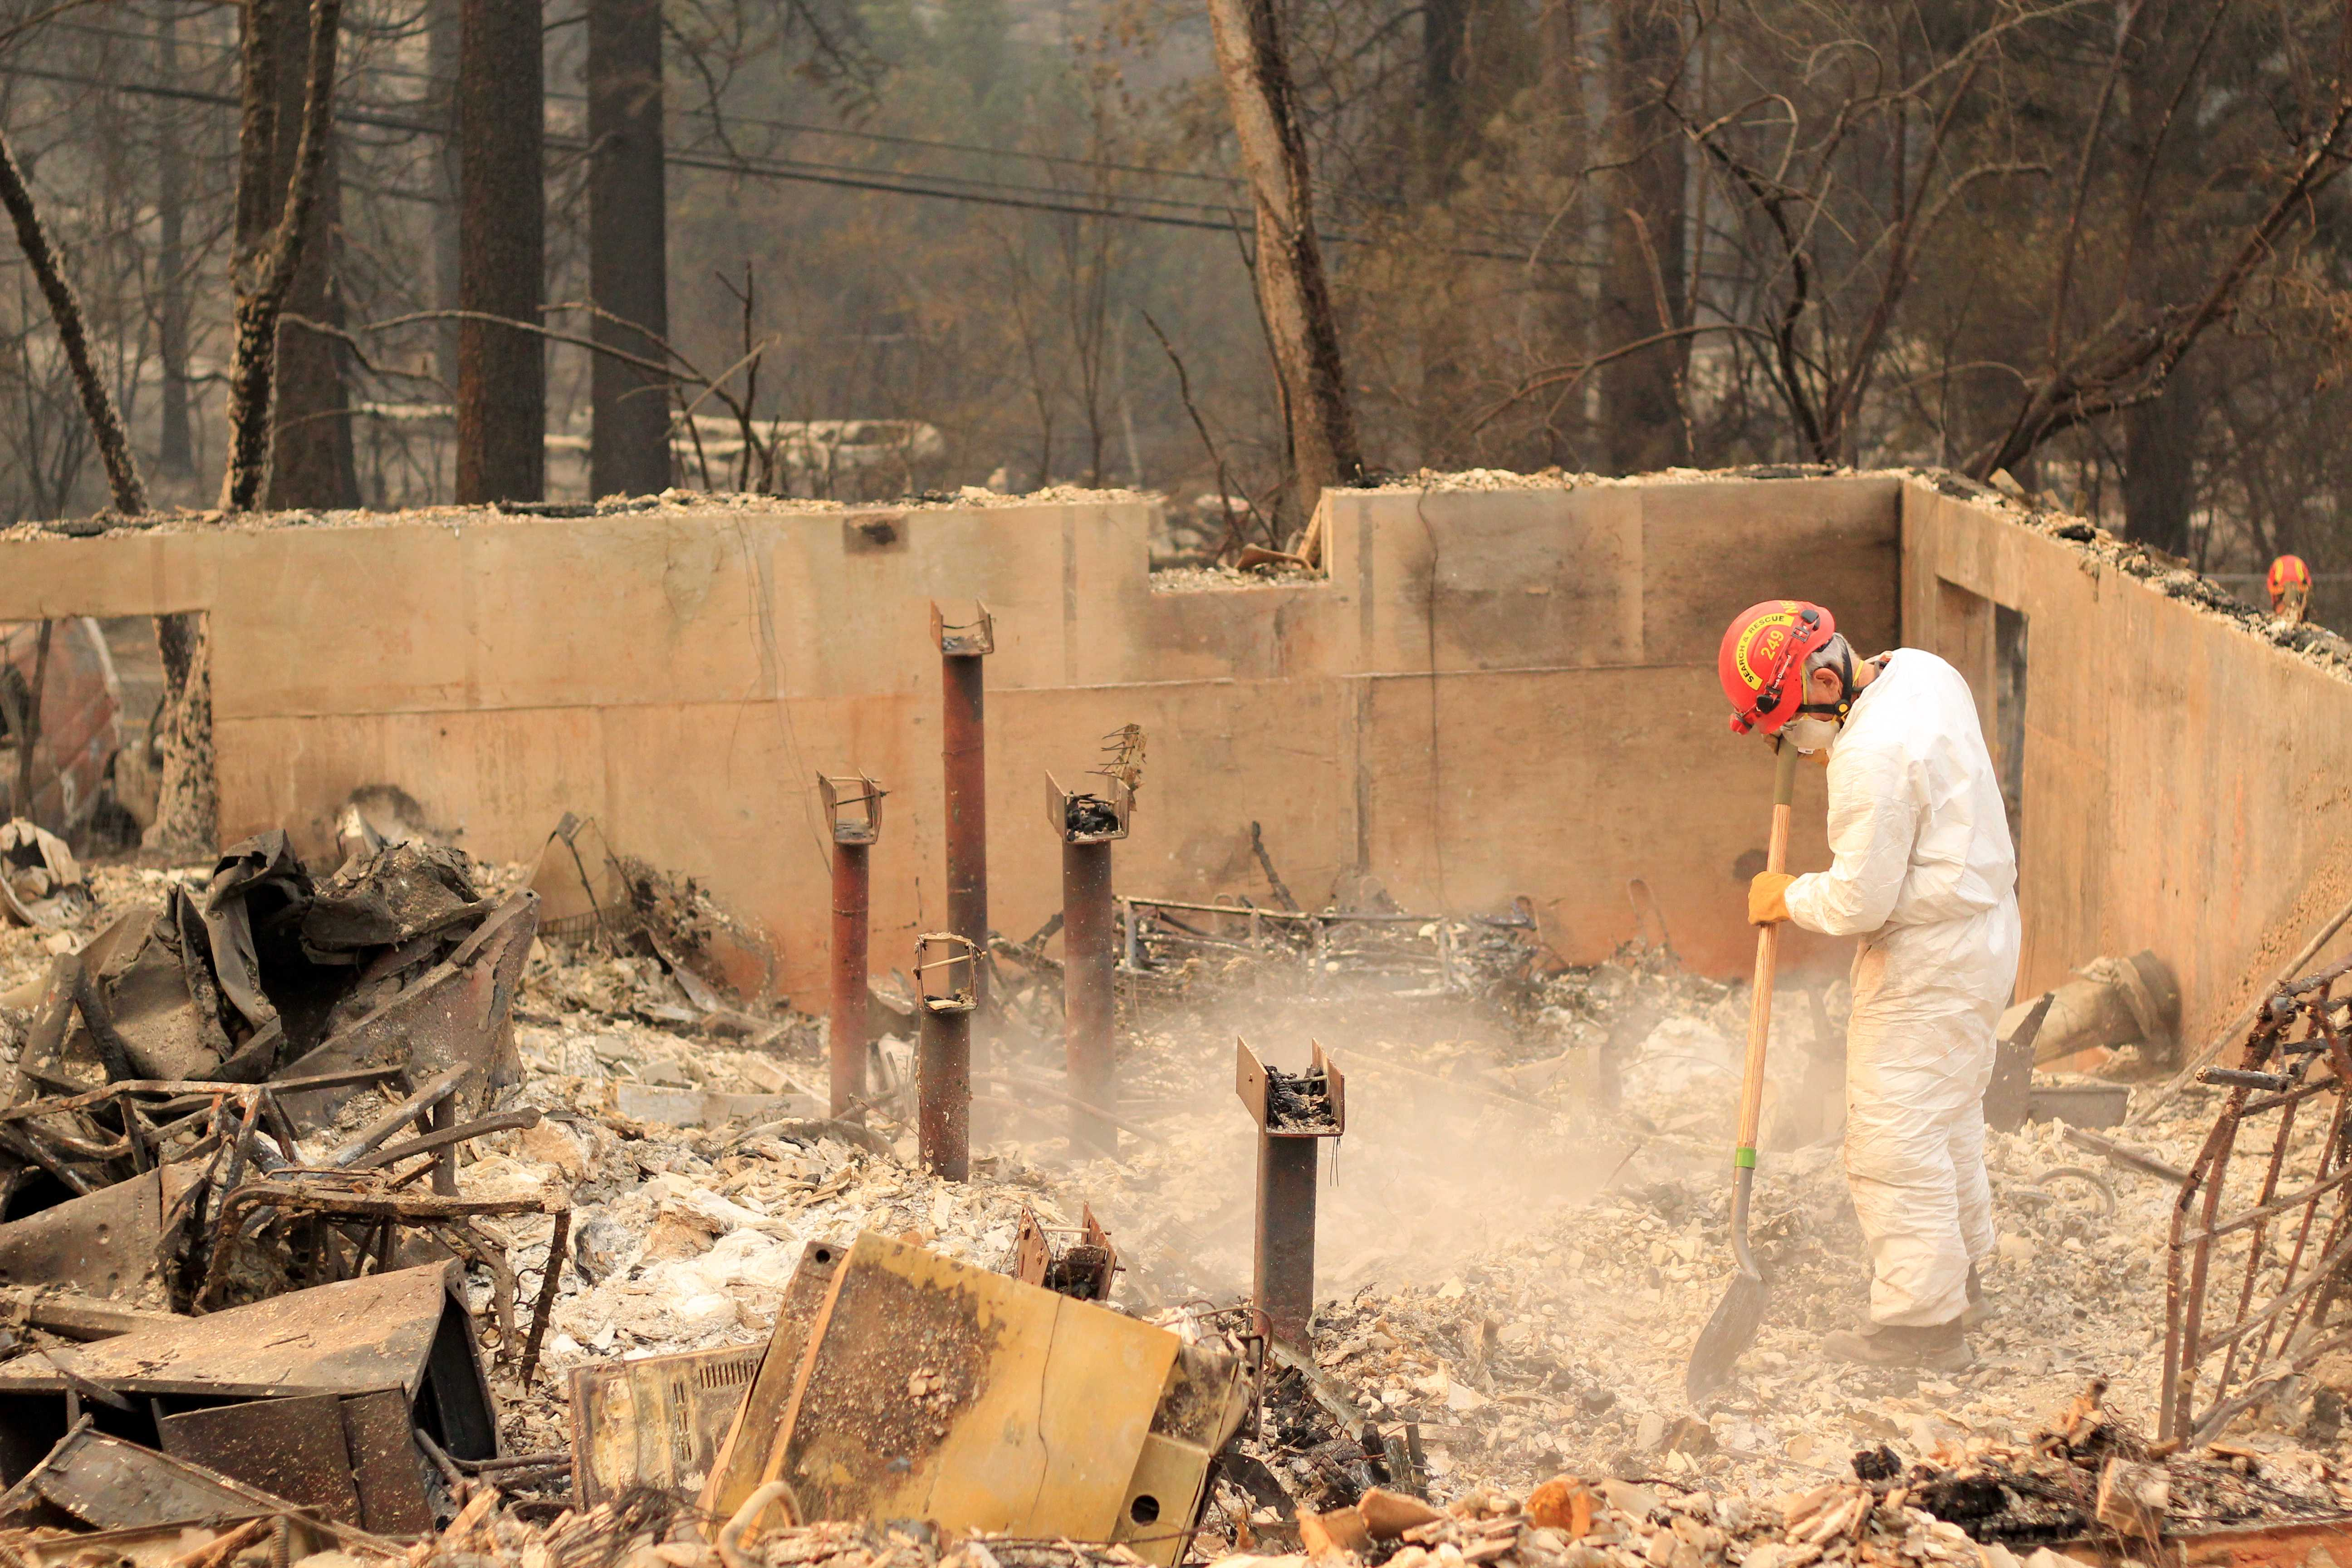 Santa Clara Sheriff's search and rescue volunteer digs through layers of burnt debris in the remnants of a house off New Skyway in Magalia, Calif., on Nov. 17, 2018. (Lorenzo Morotti/Golden Gate Xpress)